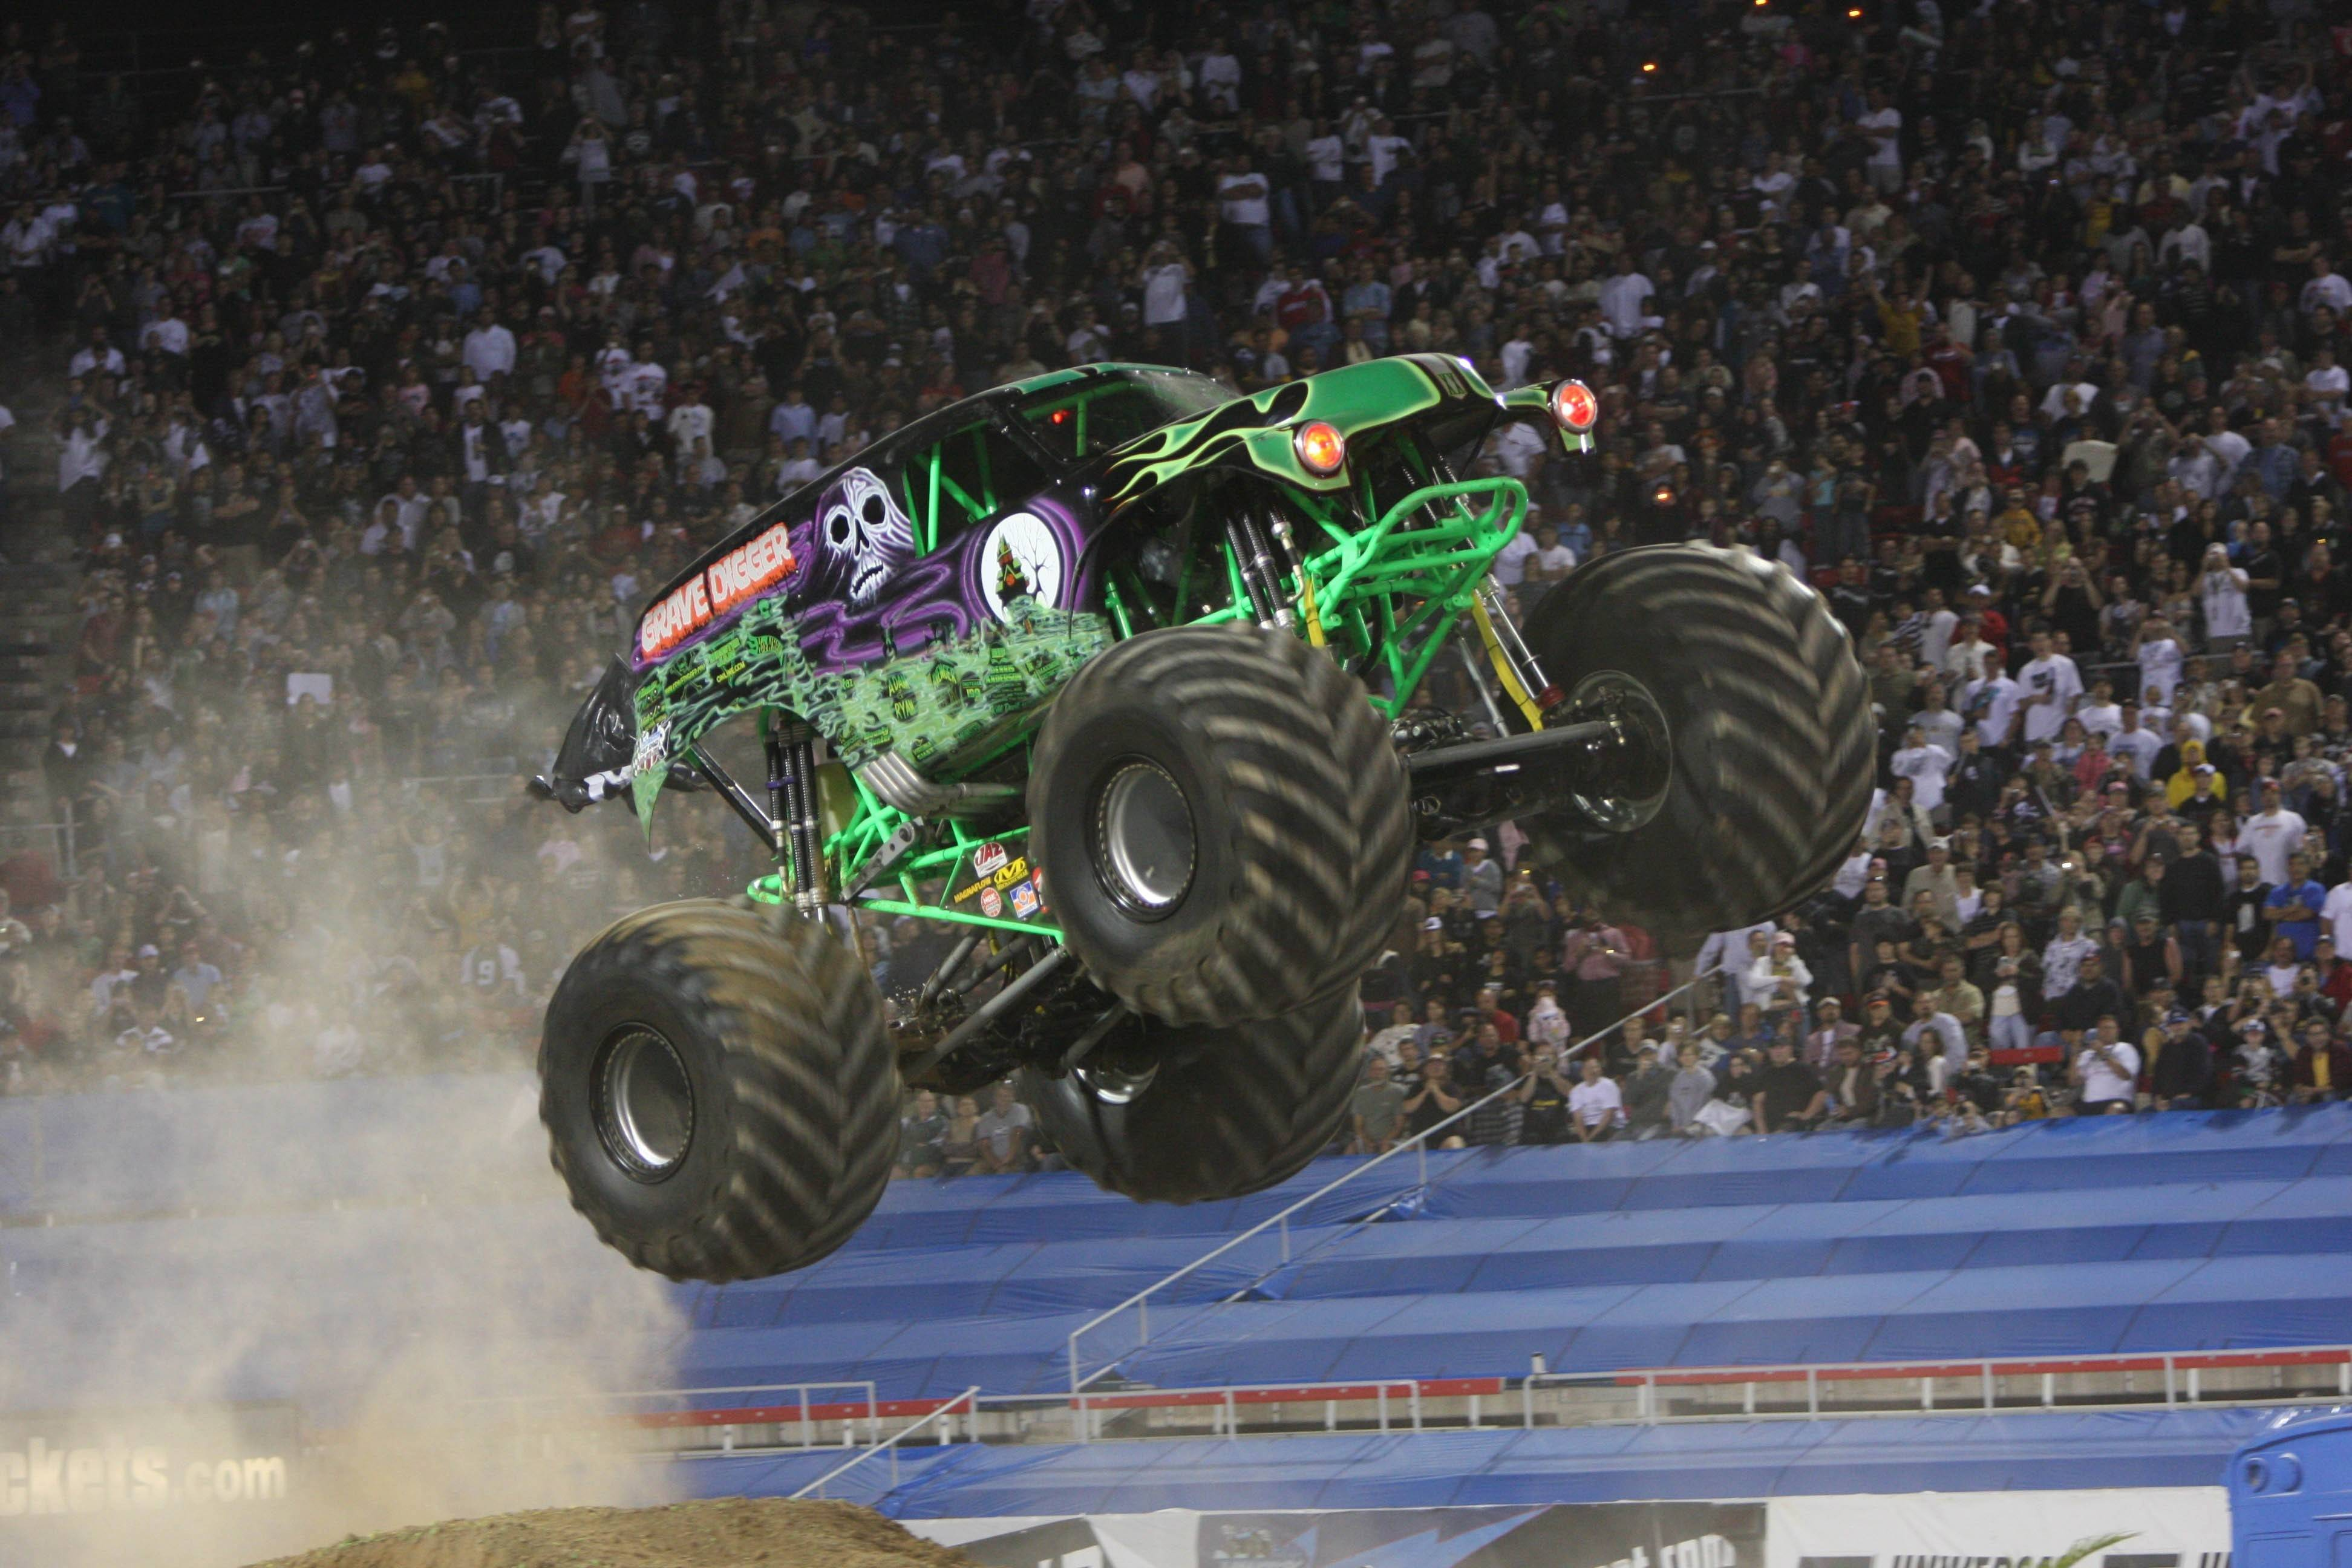 The Grave Digger jumps into action at the Monster Jam Triple Threat Series at the Allstate Arena in Rosemont.